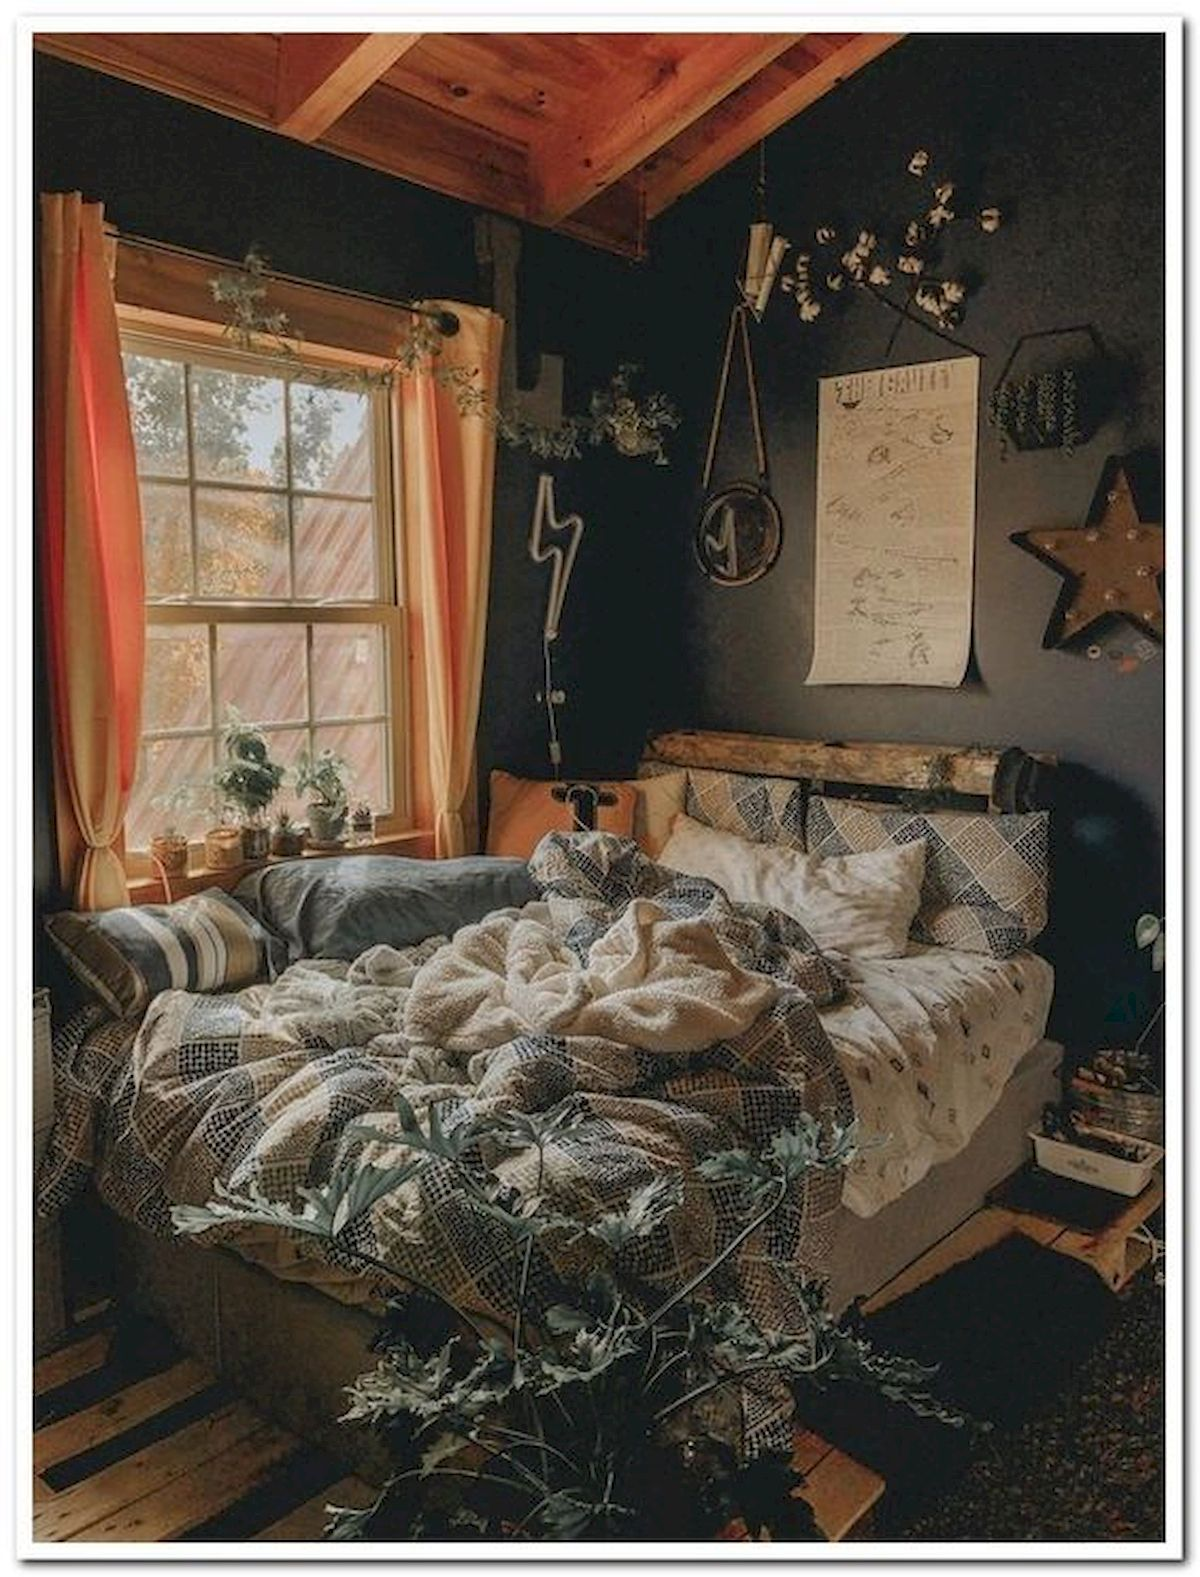 30 Awesome DIY Fall Decoration Ideas For Your Bedroom (6)